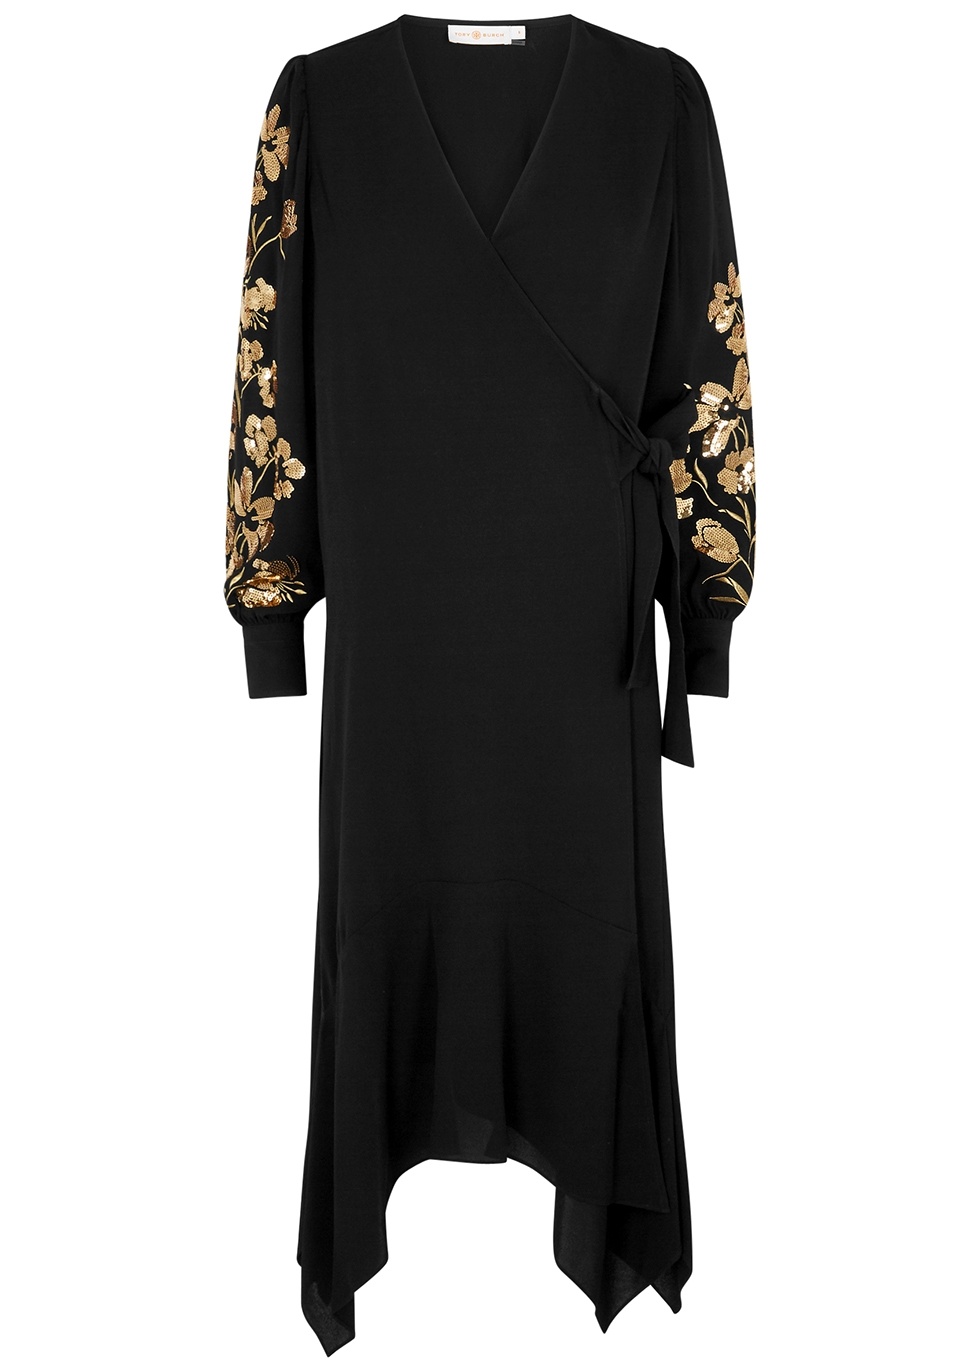 Black embellished wrap dress